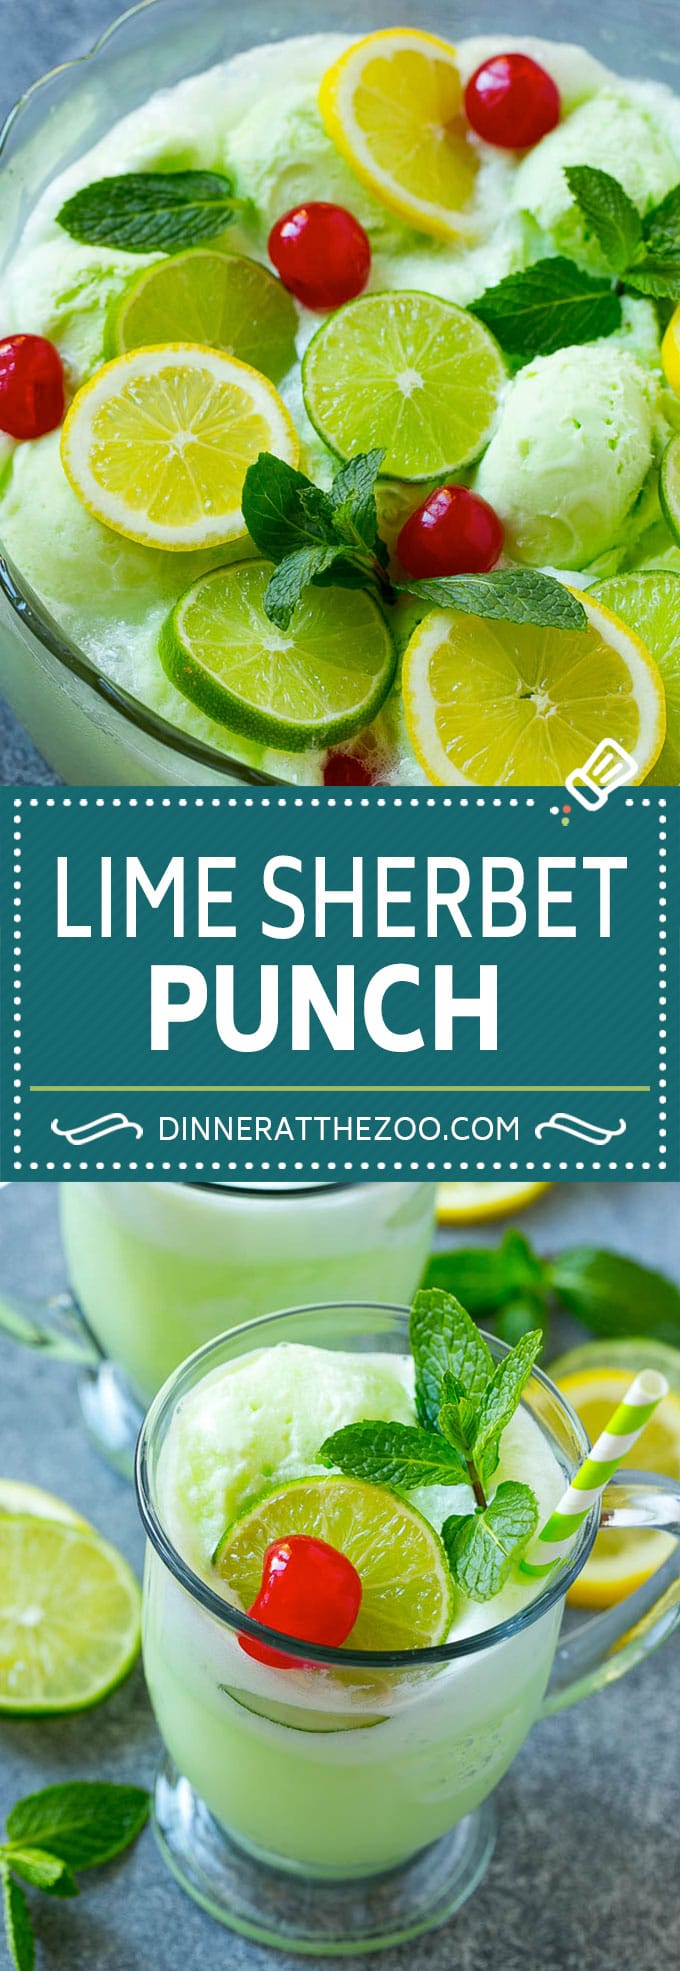 Lime Sherbet Punch | Party Punch Recipe | Sherbet Punch Recipe | Limeade Recipe #sherbet #punch #lime #drink #dinneratthezoo